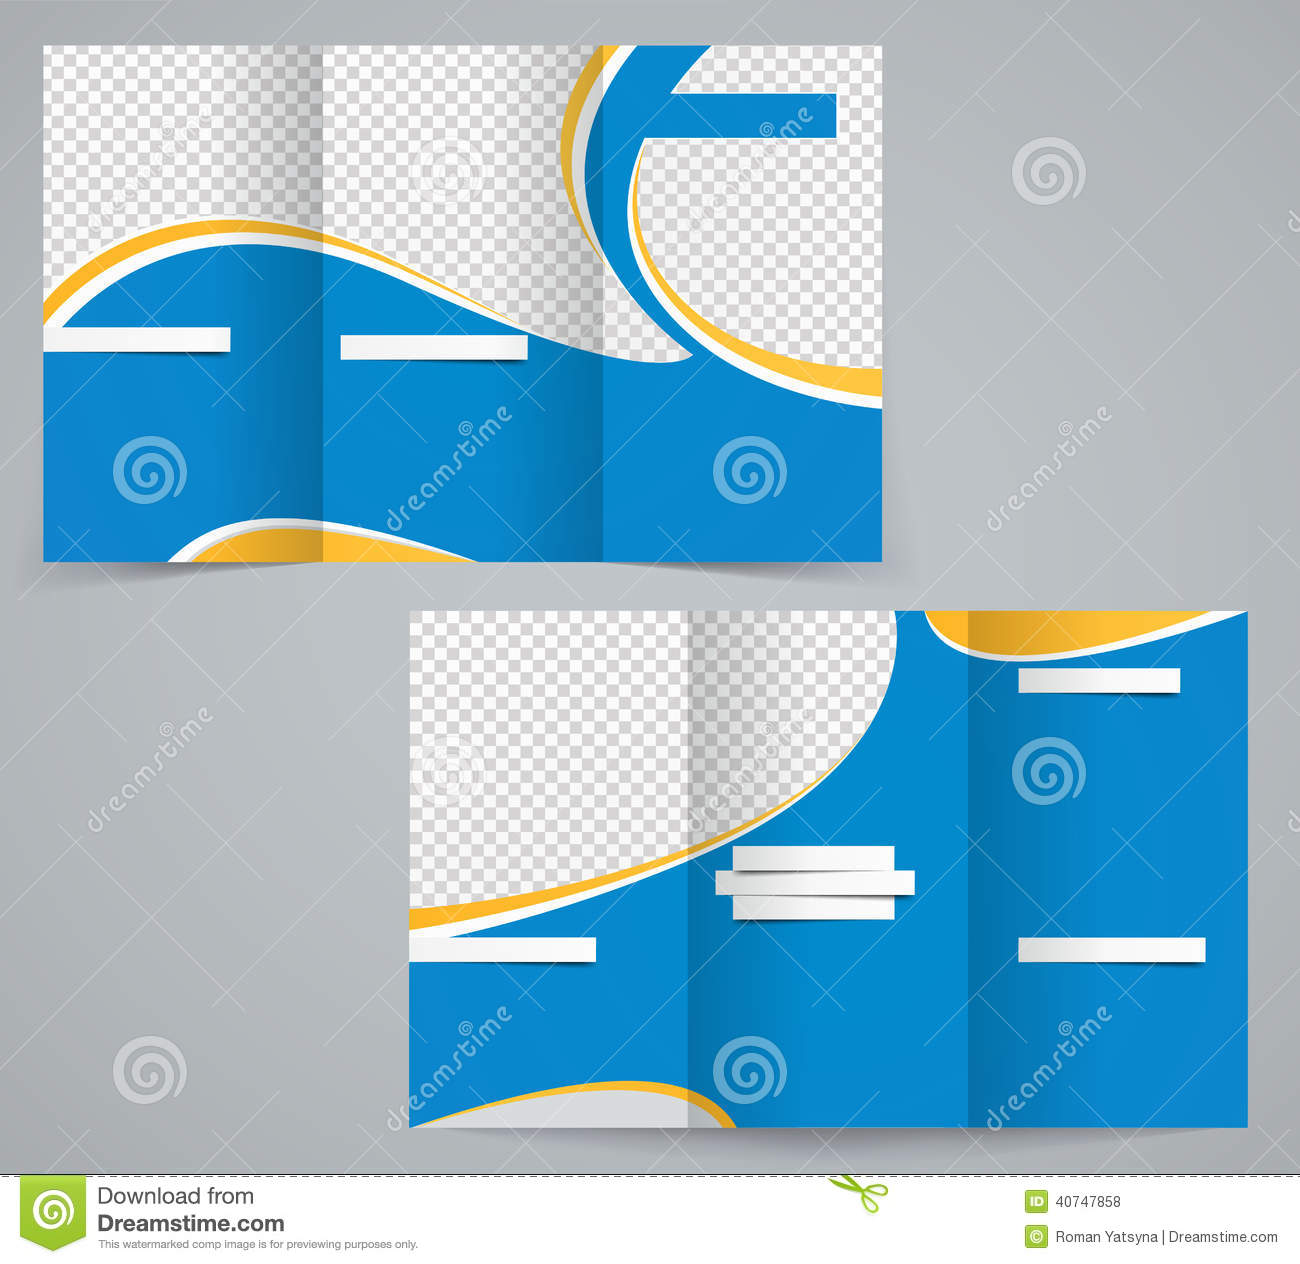 Three fold business brochure template corporate flyer or cover download comp accmission Choice Image